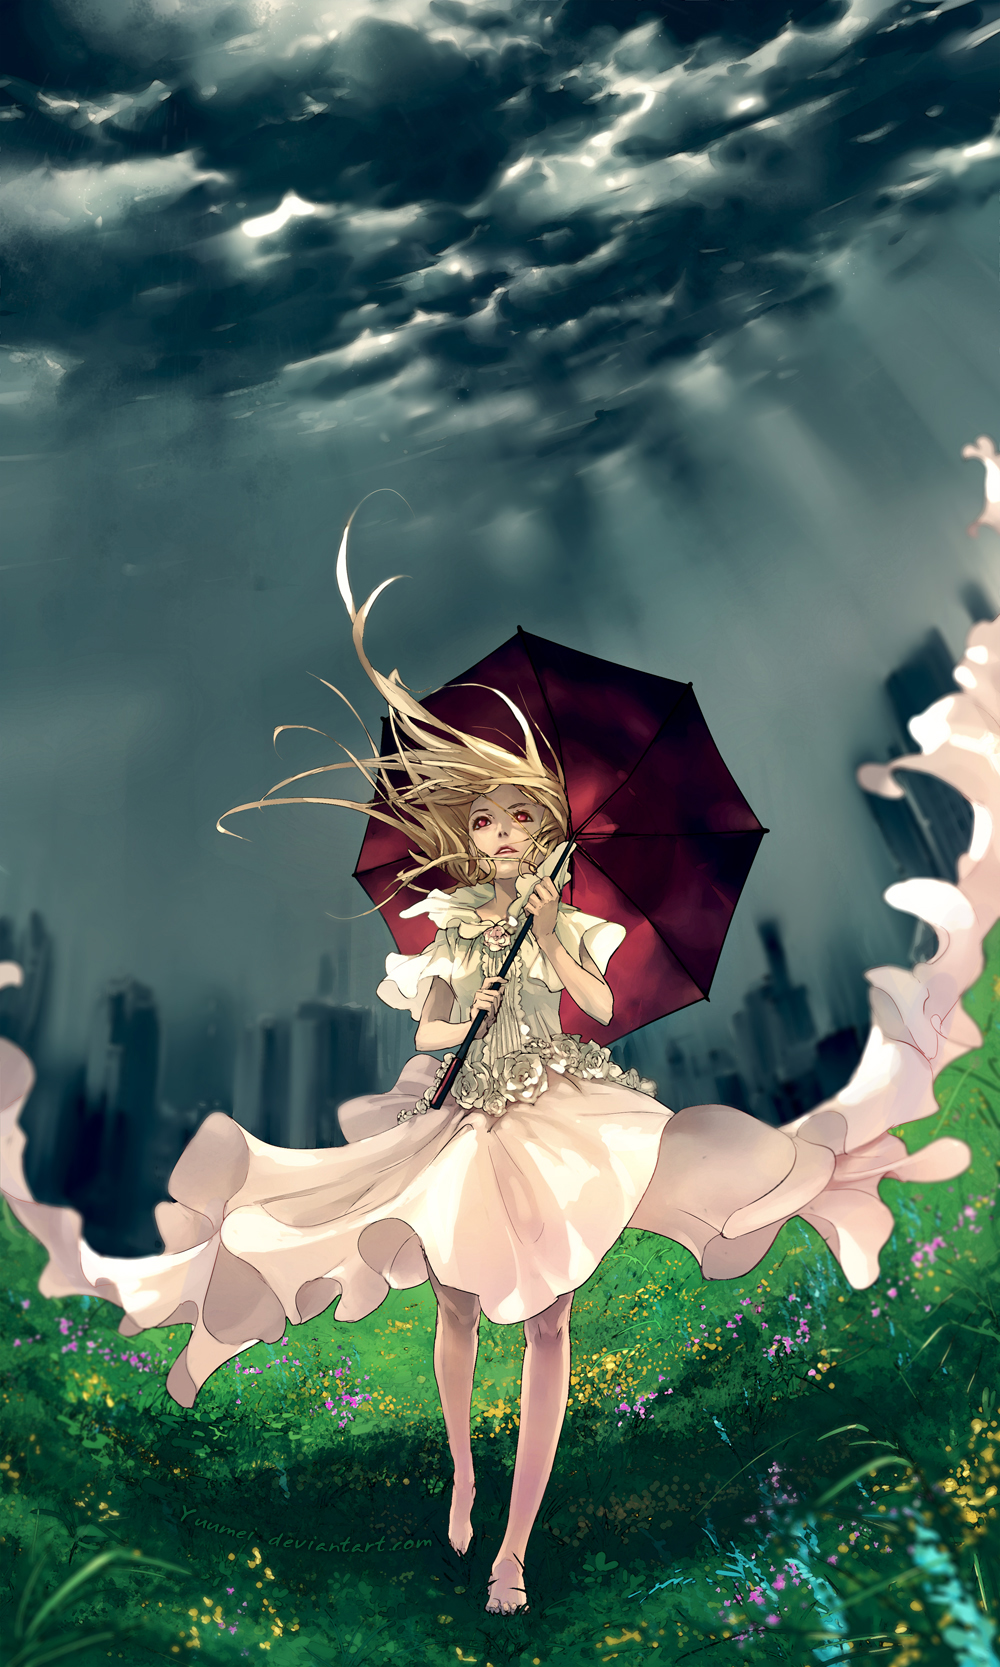 Don't Rain on My Parade by yuumei